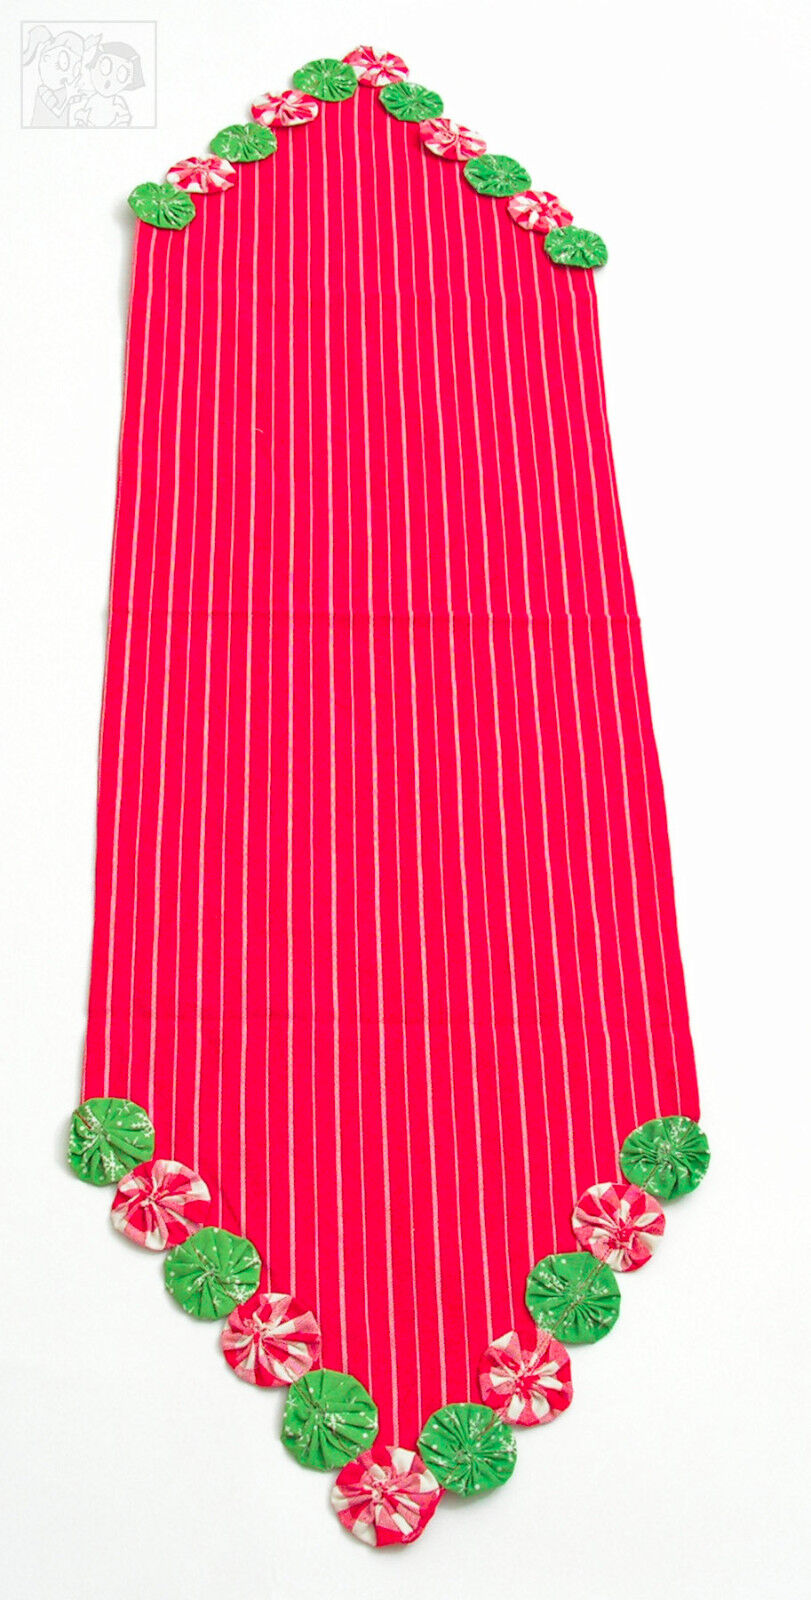 """Table Runner 48"""" L  - YoYo Christmas by Park Designs - Holid"""